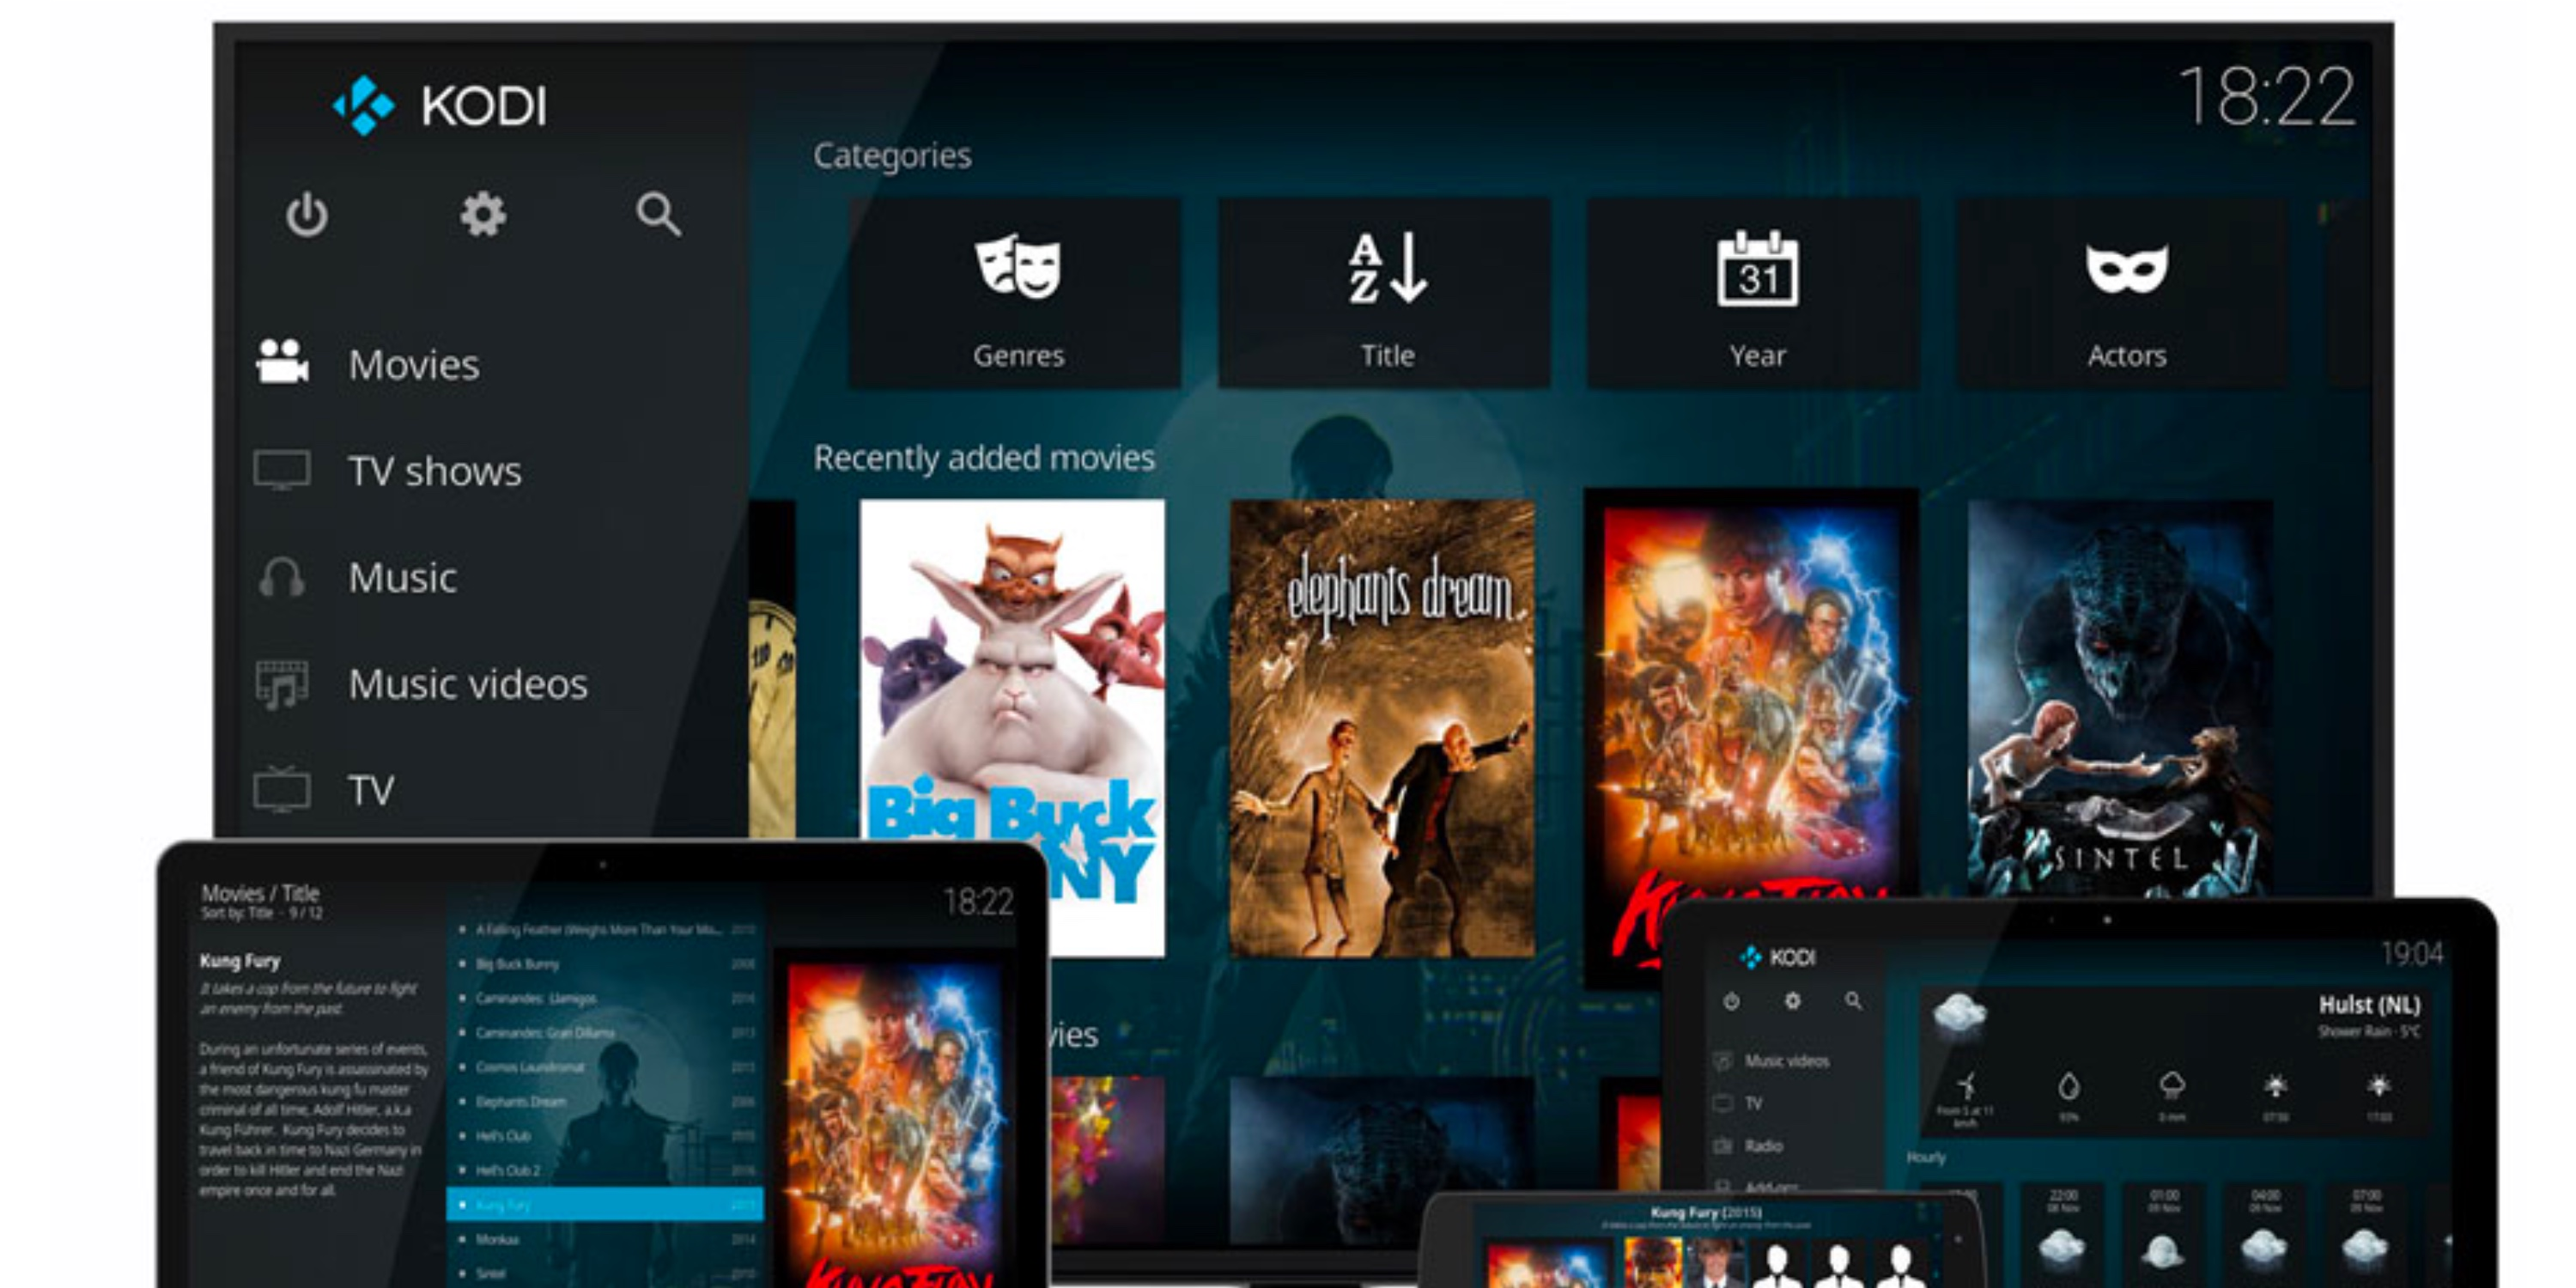 Kodi Open Source